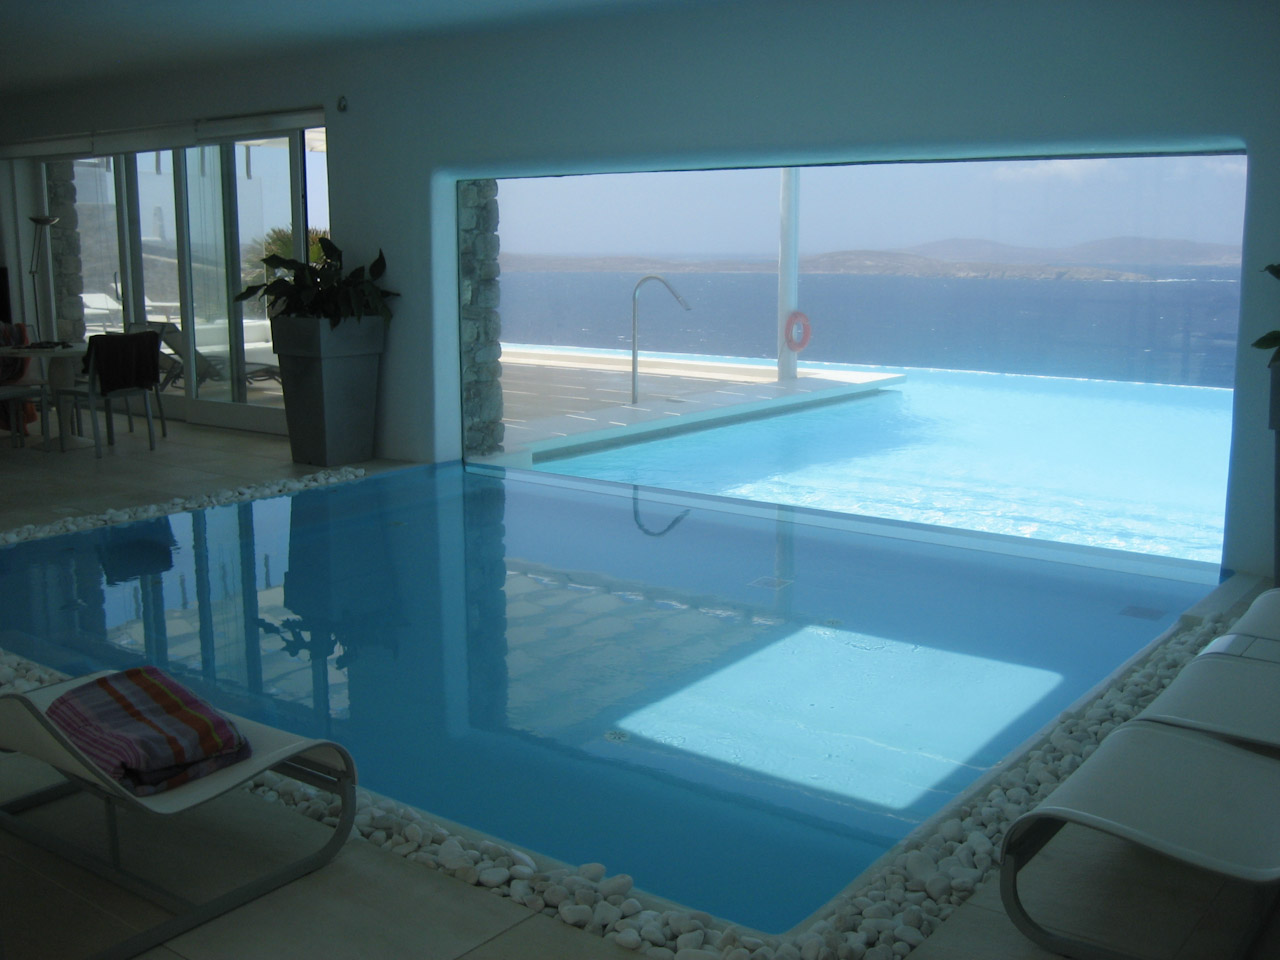 Swimming pool design modern design by - House with swimming pool design ...